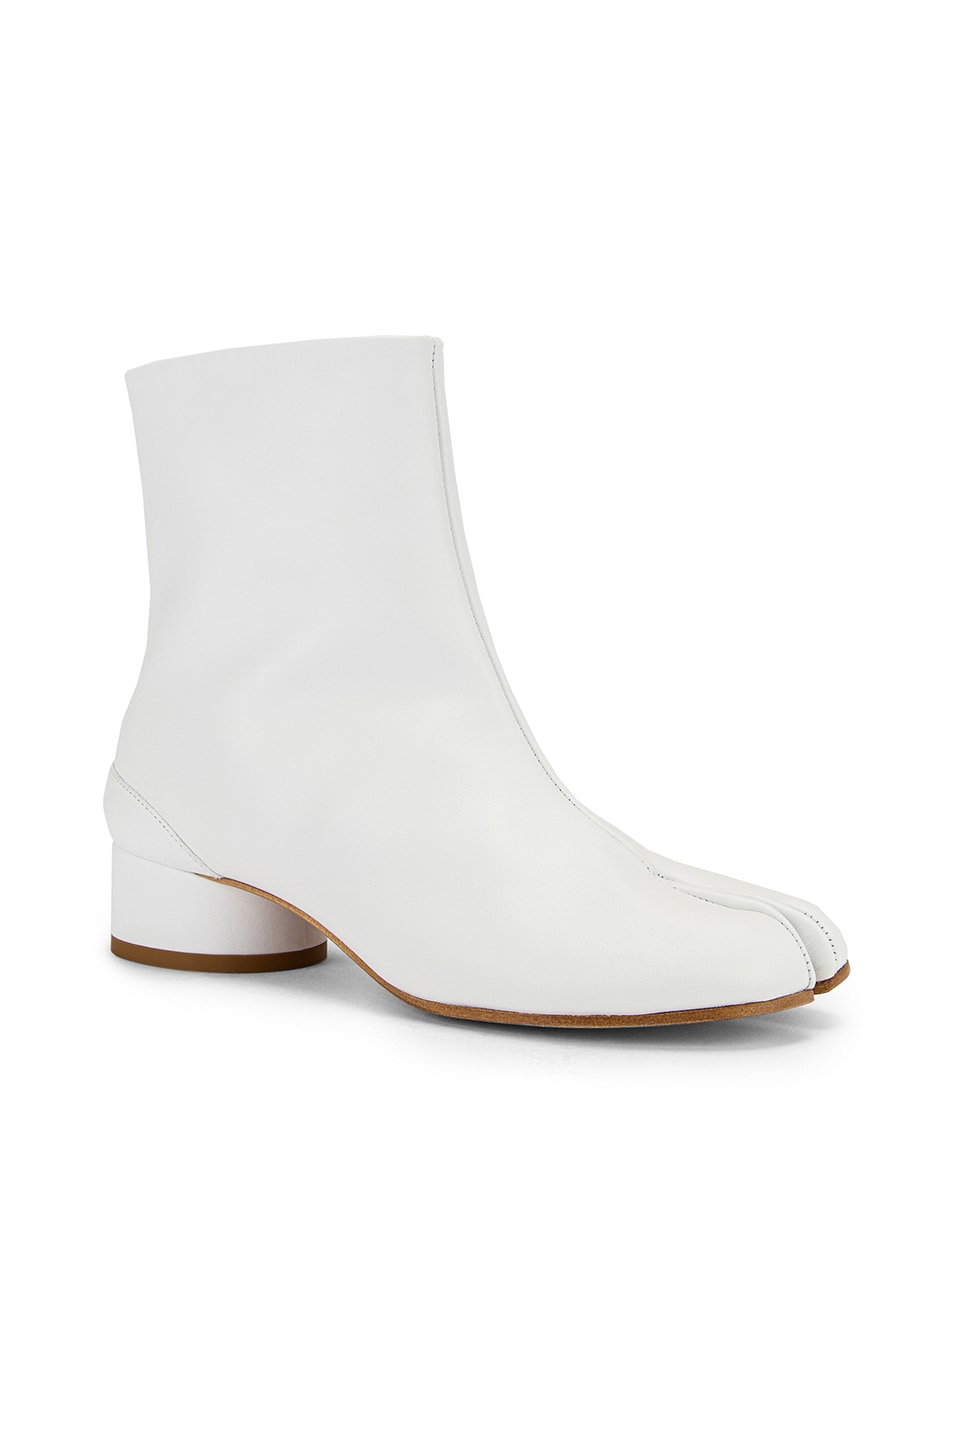 Image 2 of Maison Margiela Tabi Boots in White